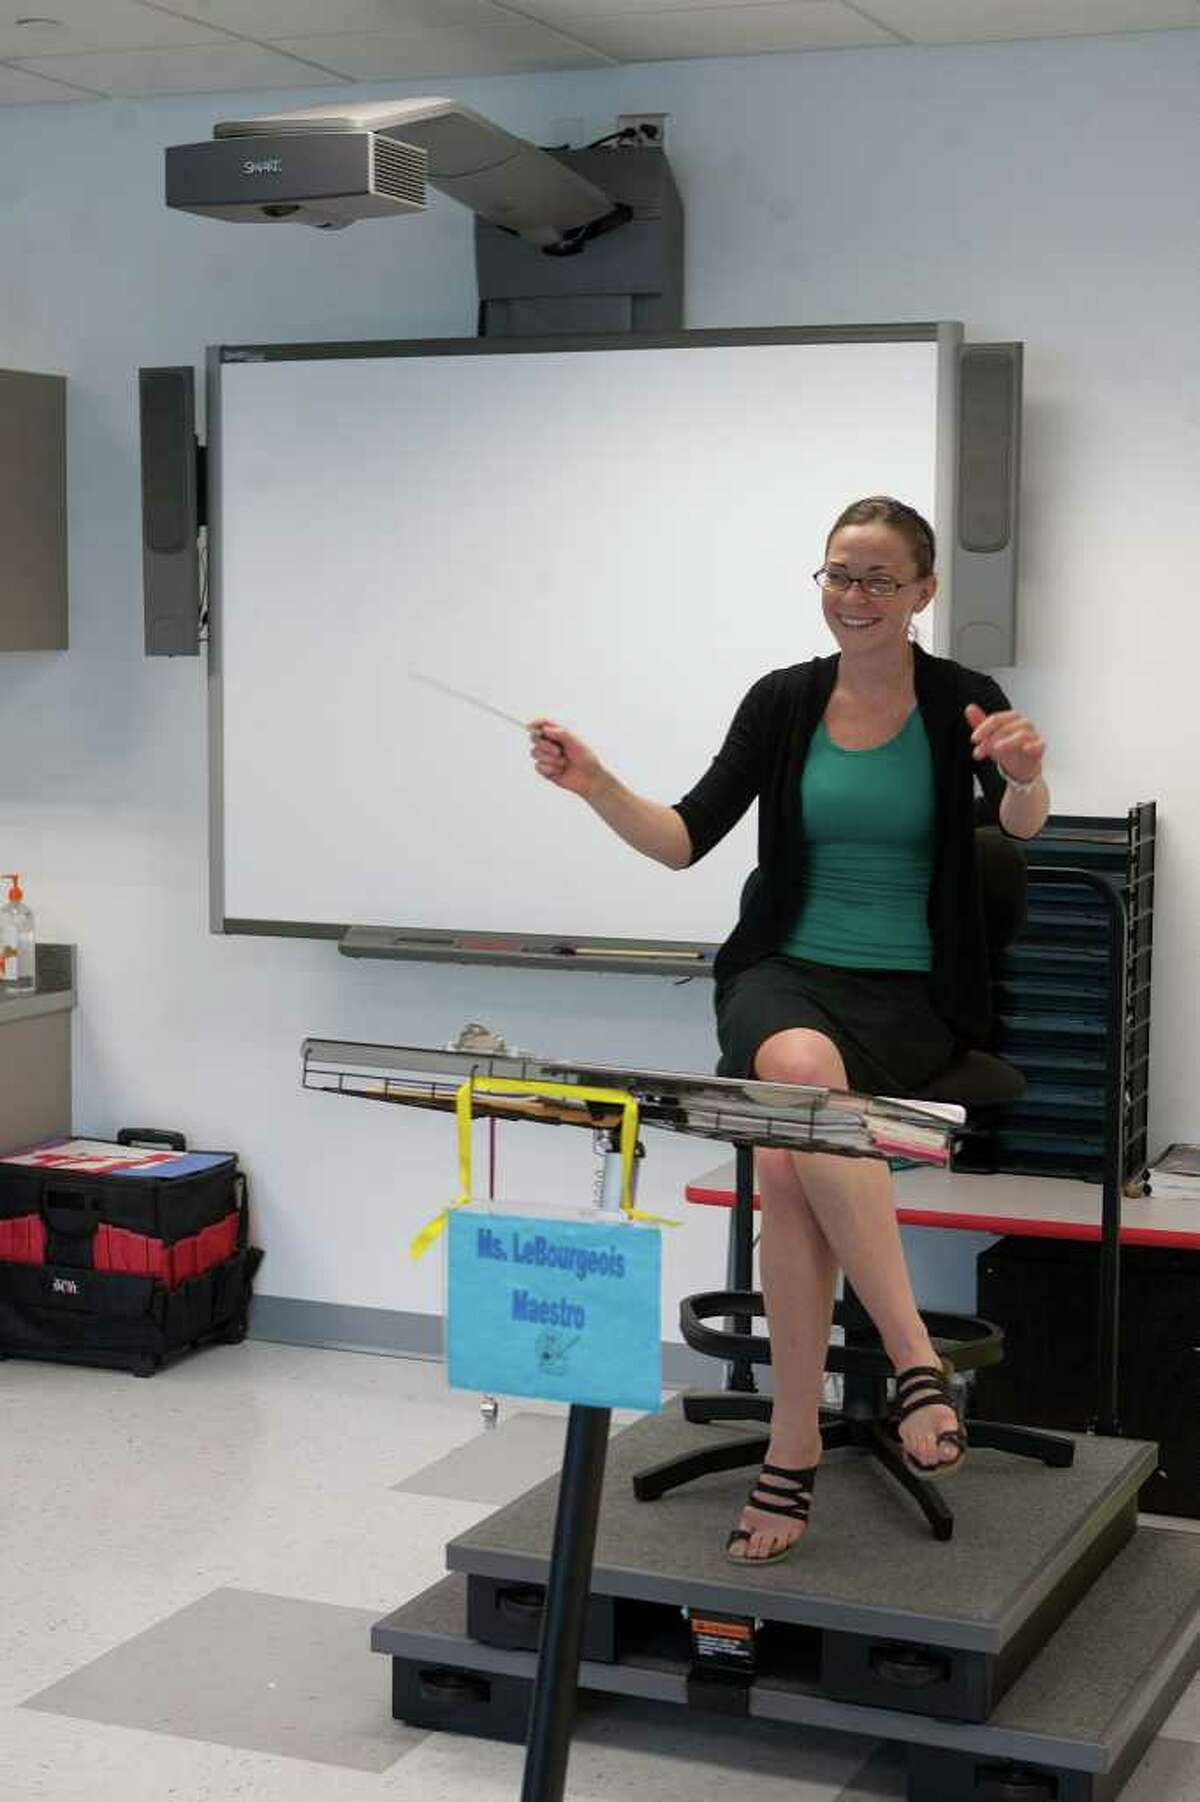 New: SmartBoard Sure it's just a glorified touch screen, but still - it beats the white board covered with slightly legible handwriting.Pictured: Orchestra teacher Colleen LeBourgeois warms up at the new Lovett Elementary School building in Houston.